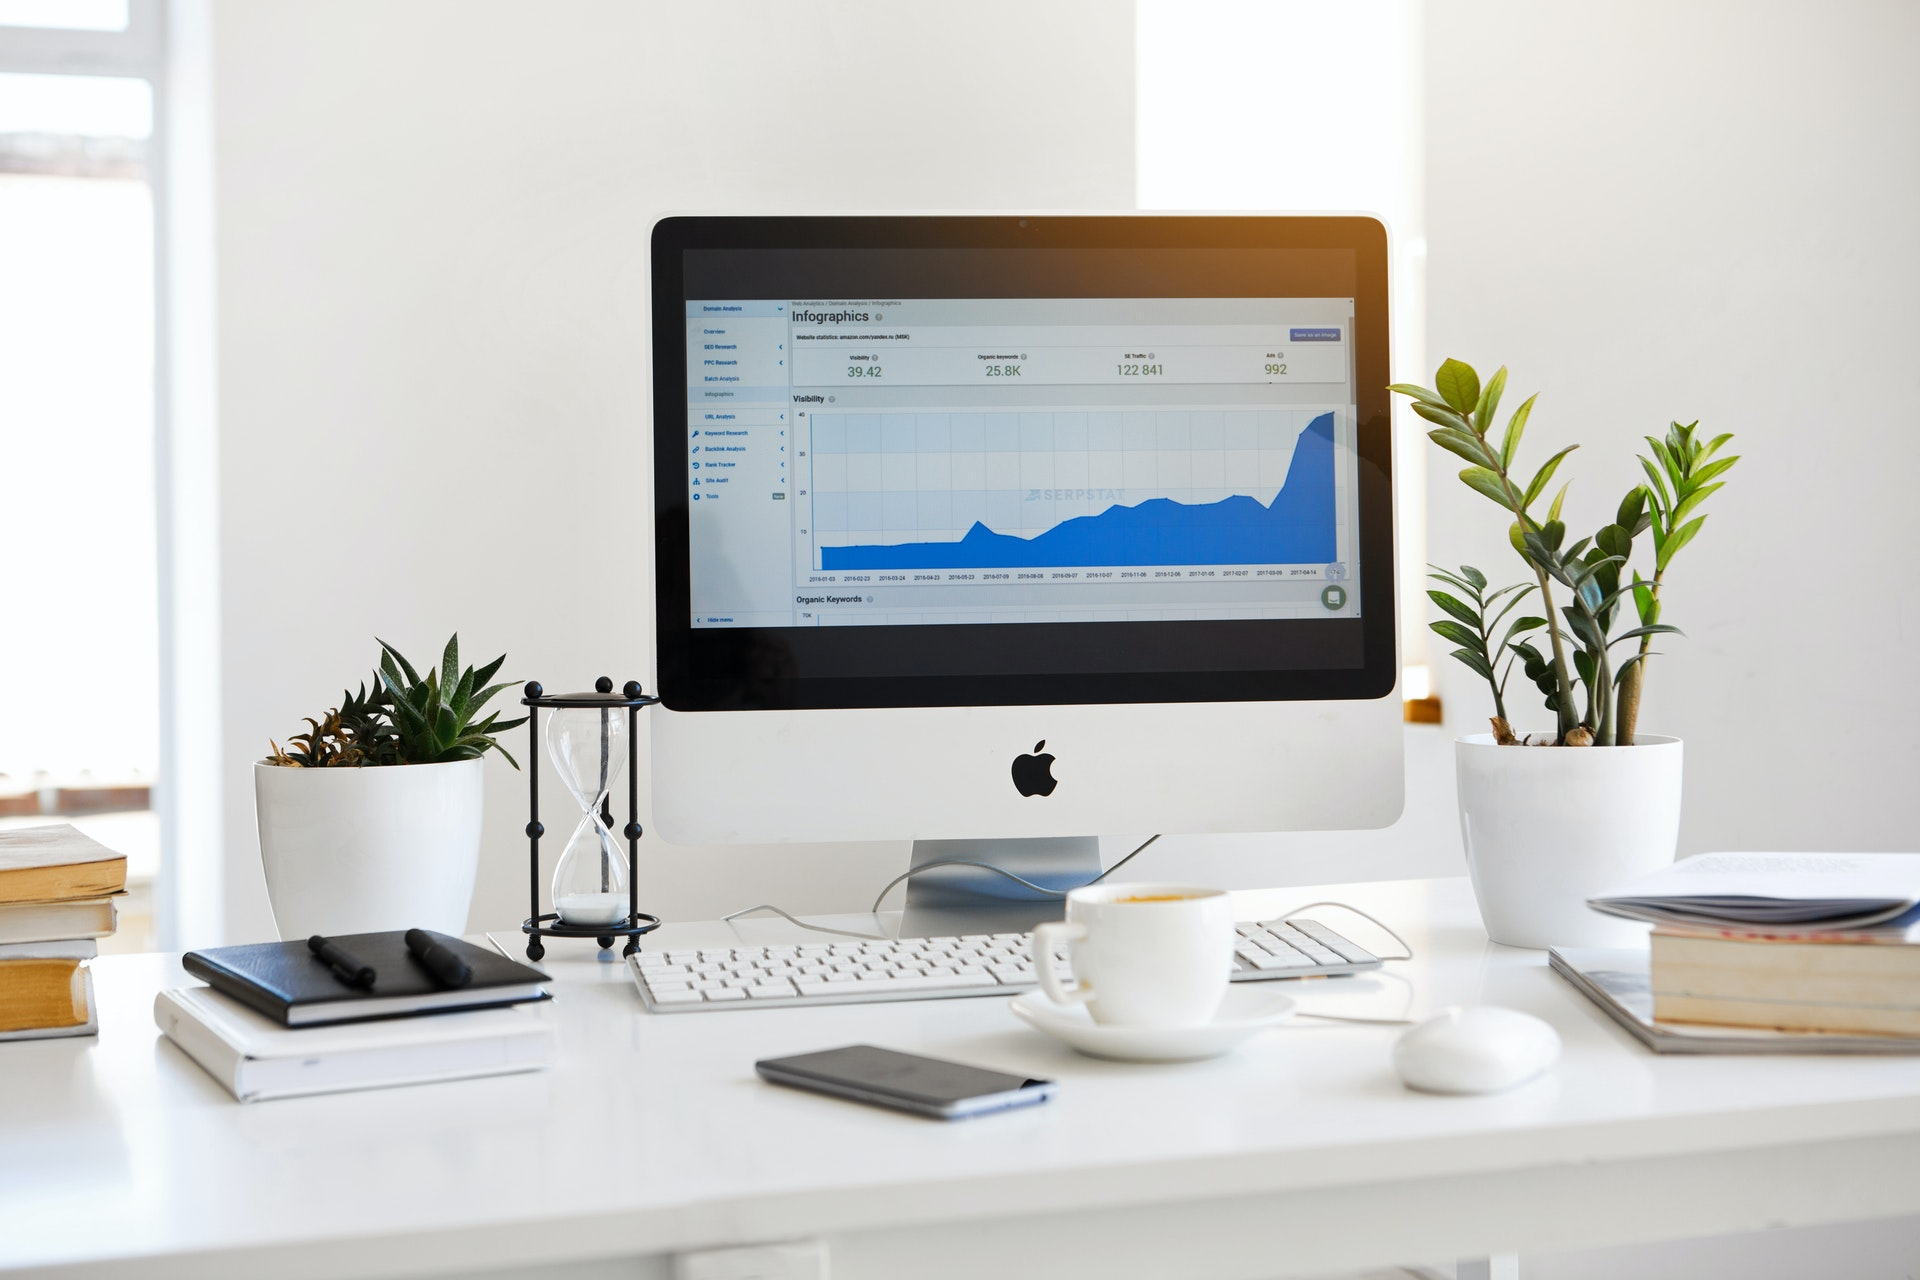 Tips on Organizing Home Office Desk